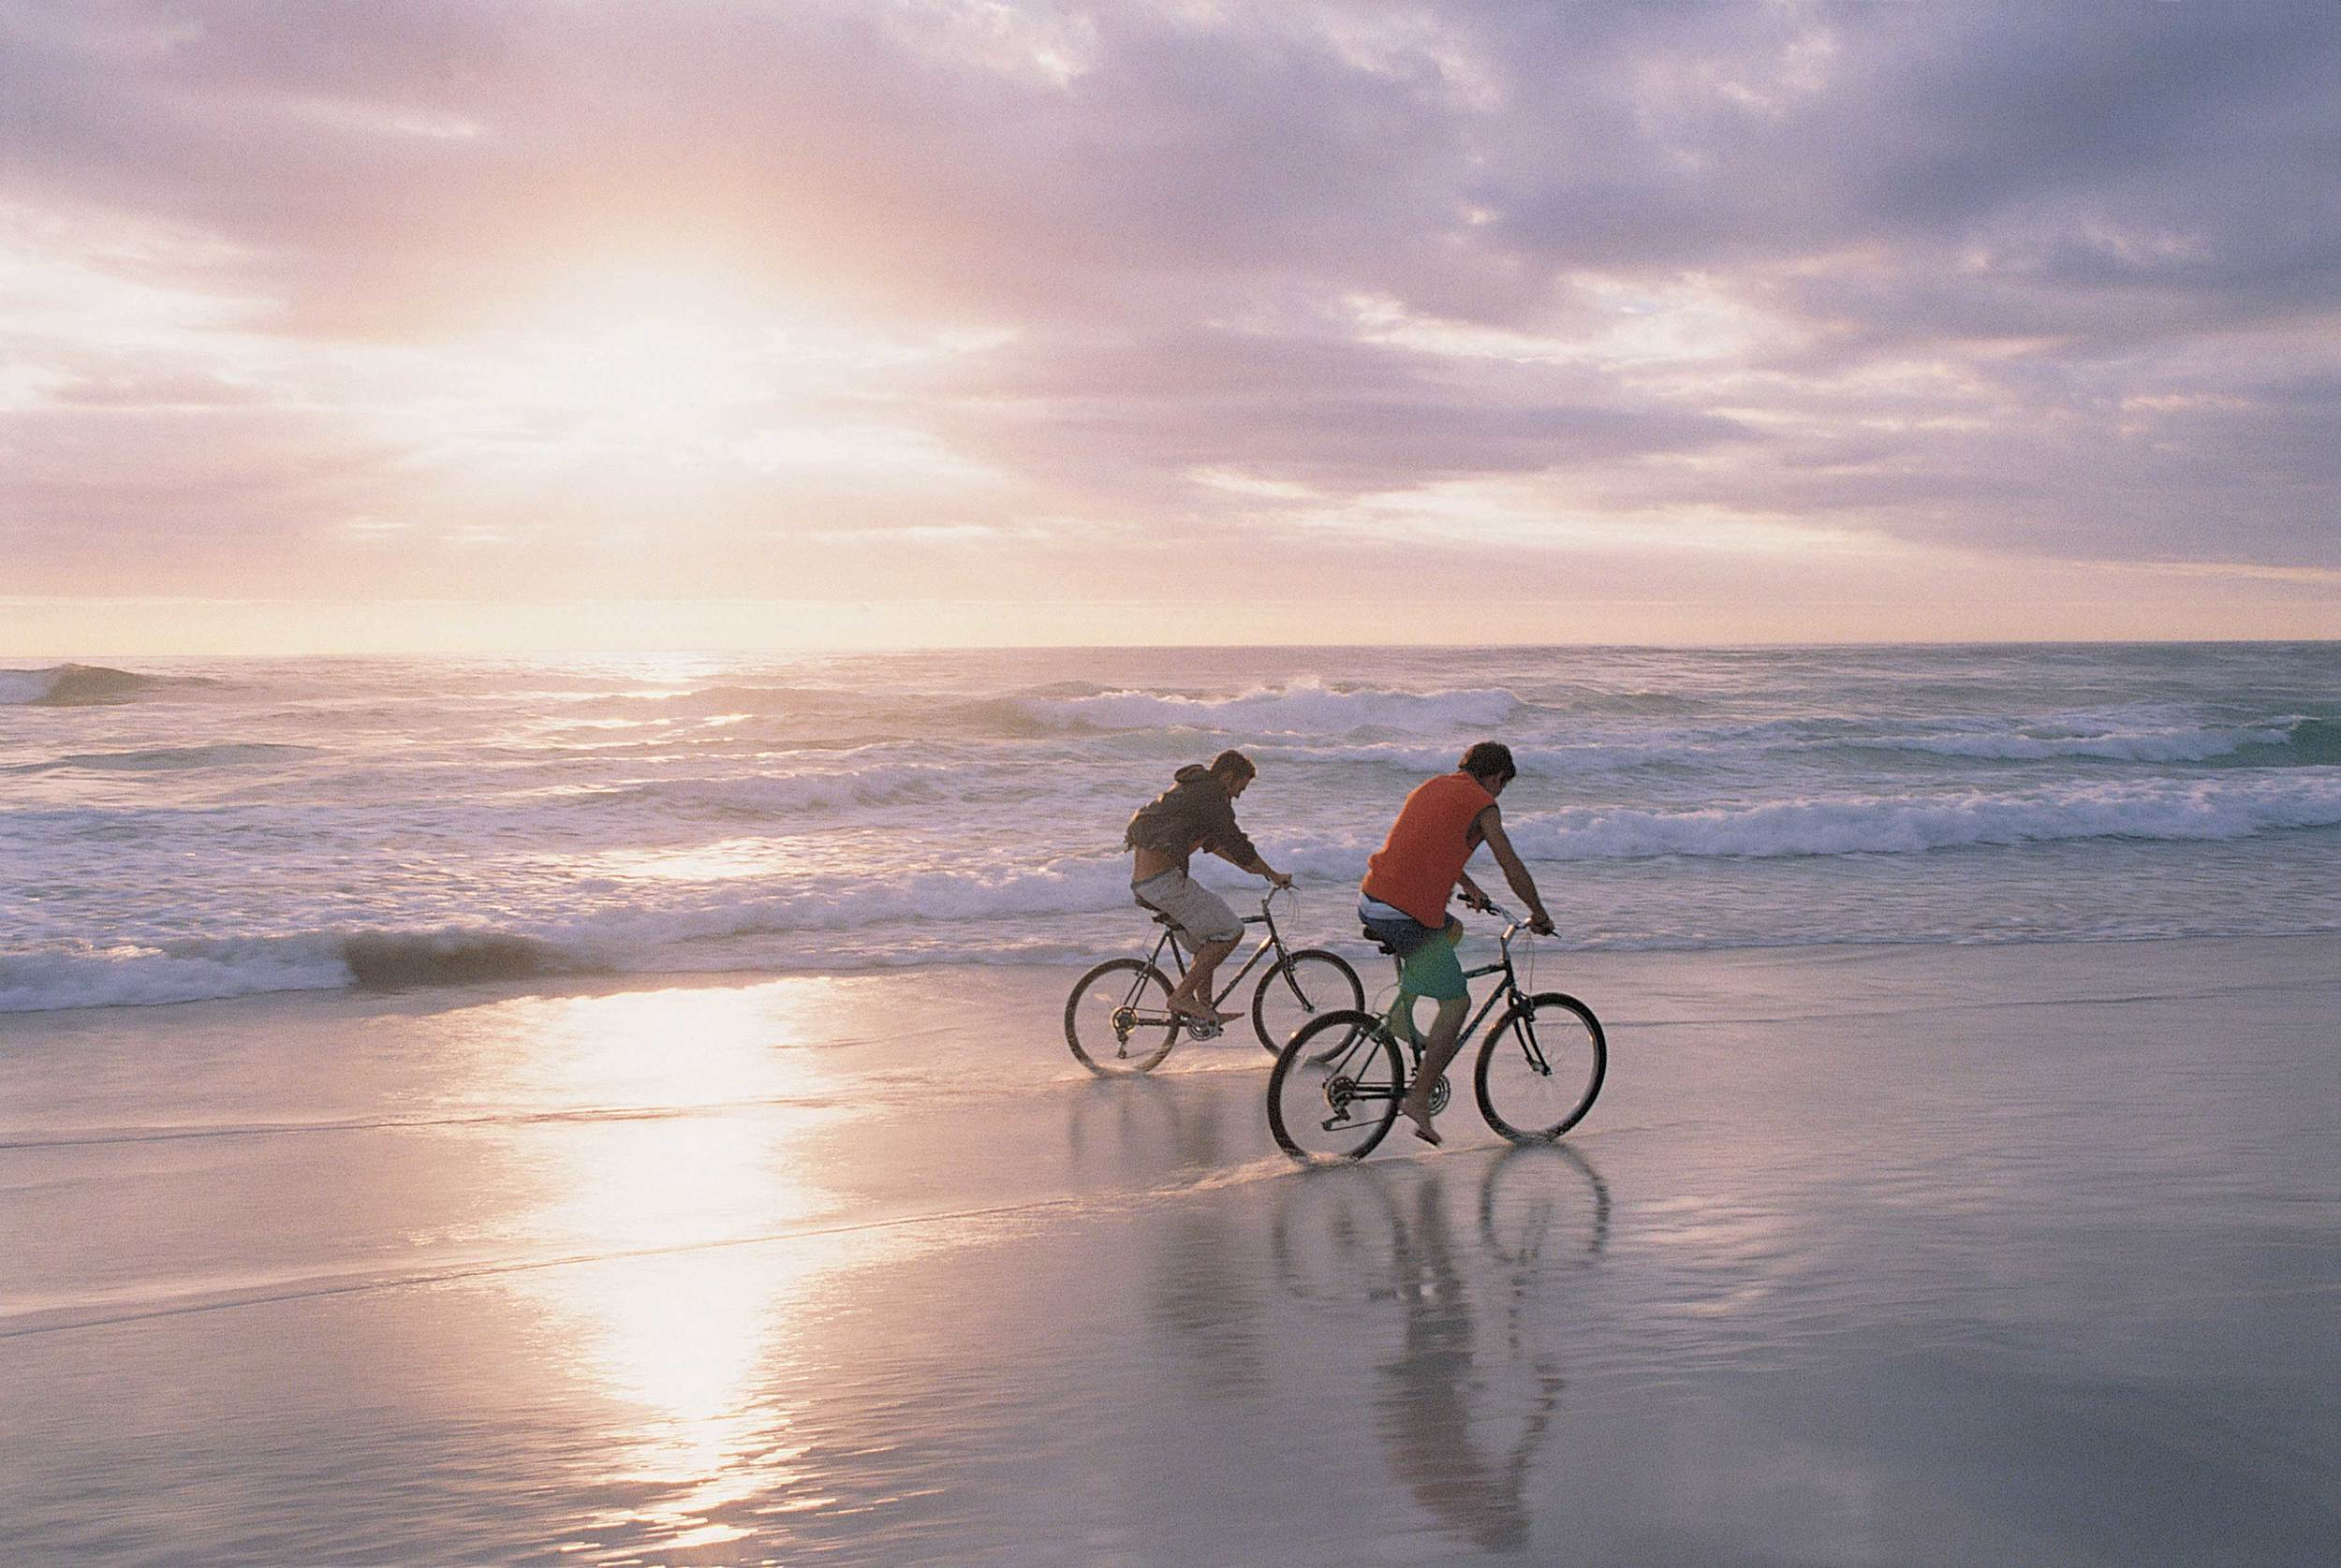 kids-biking-on-private-beach_Ocean-Edge.jpg